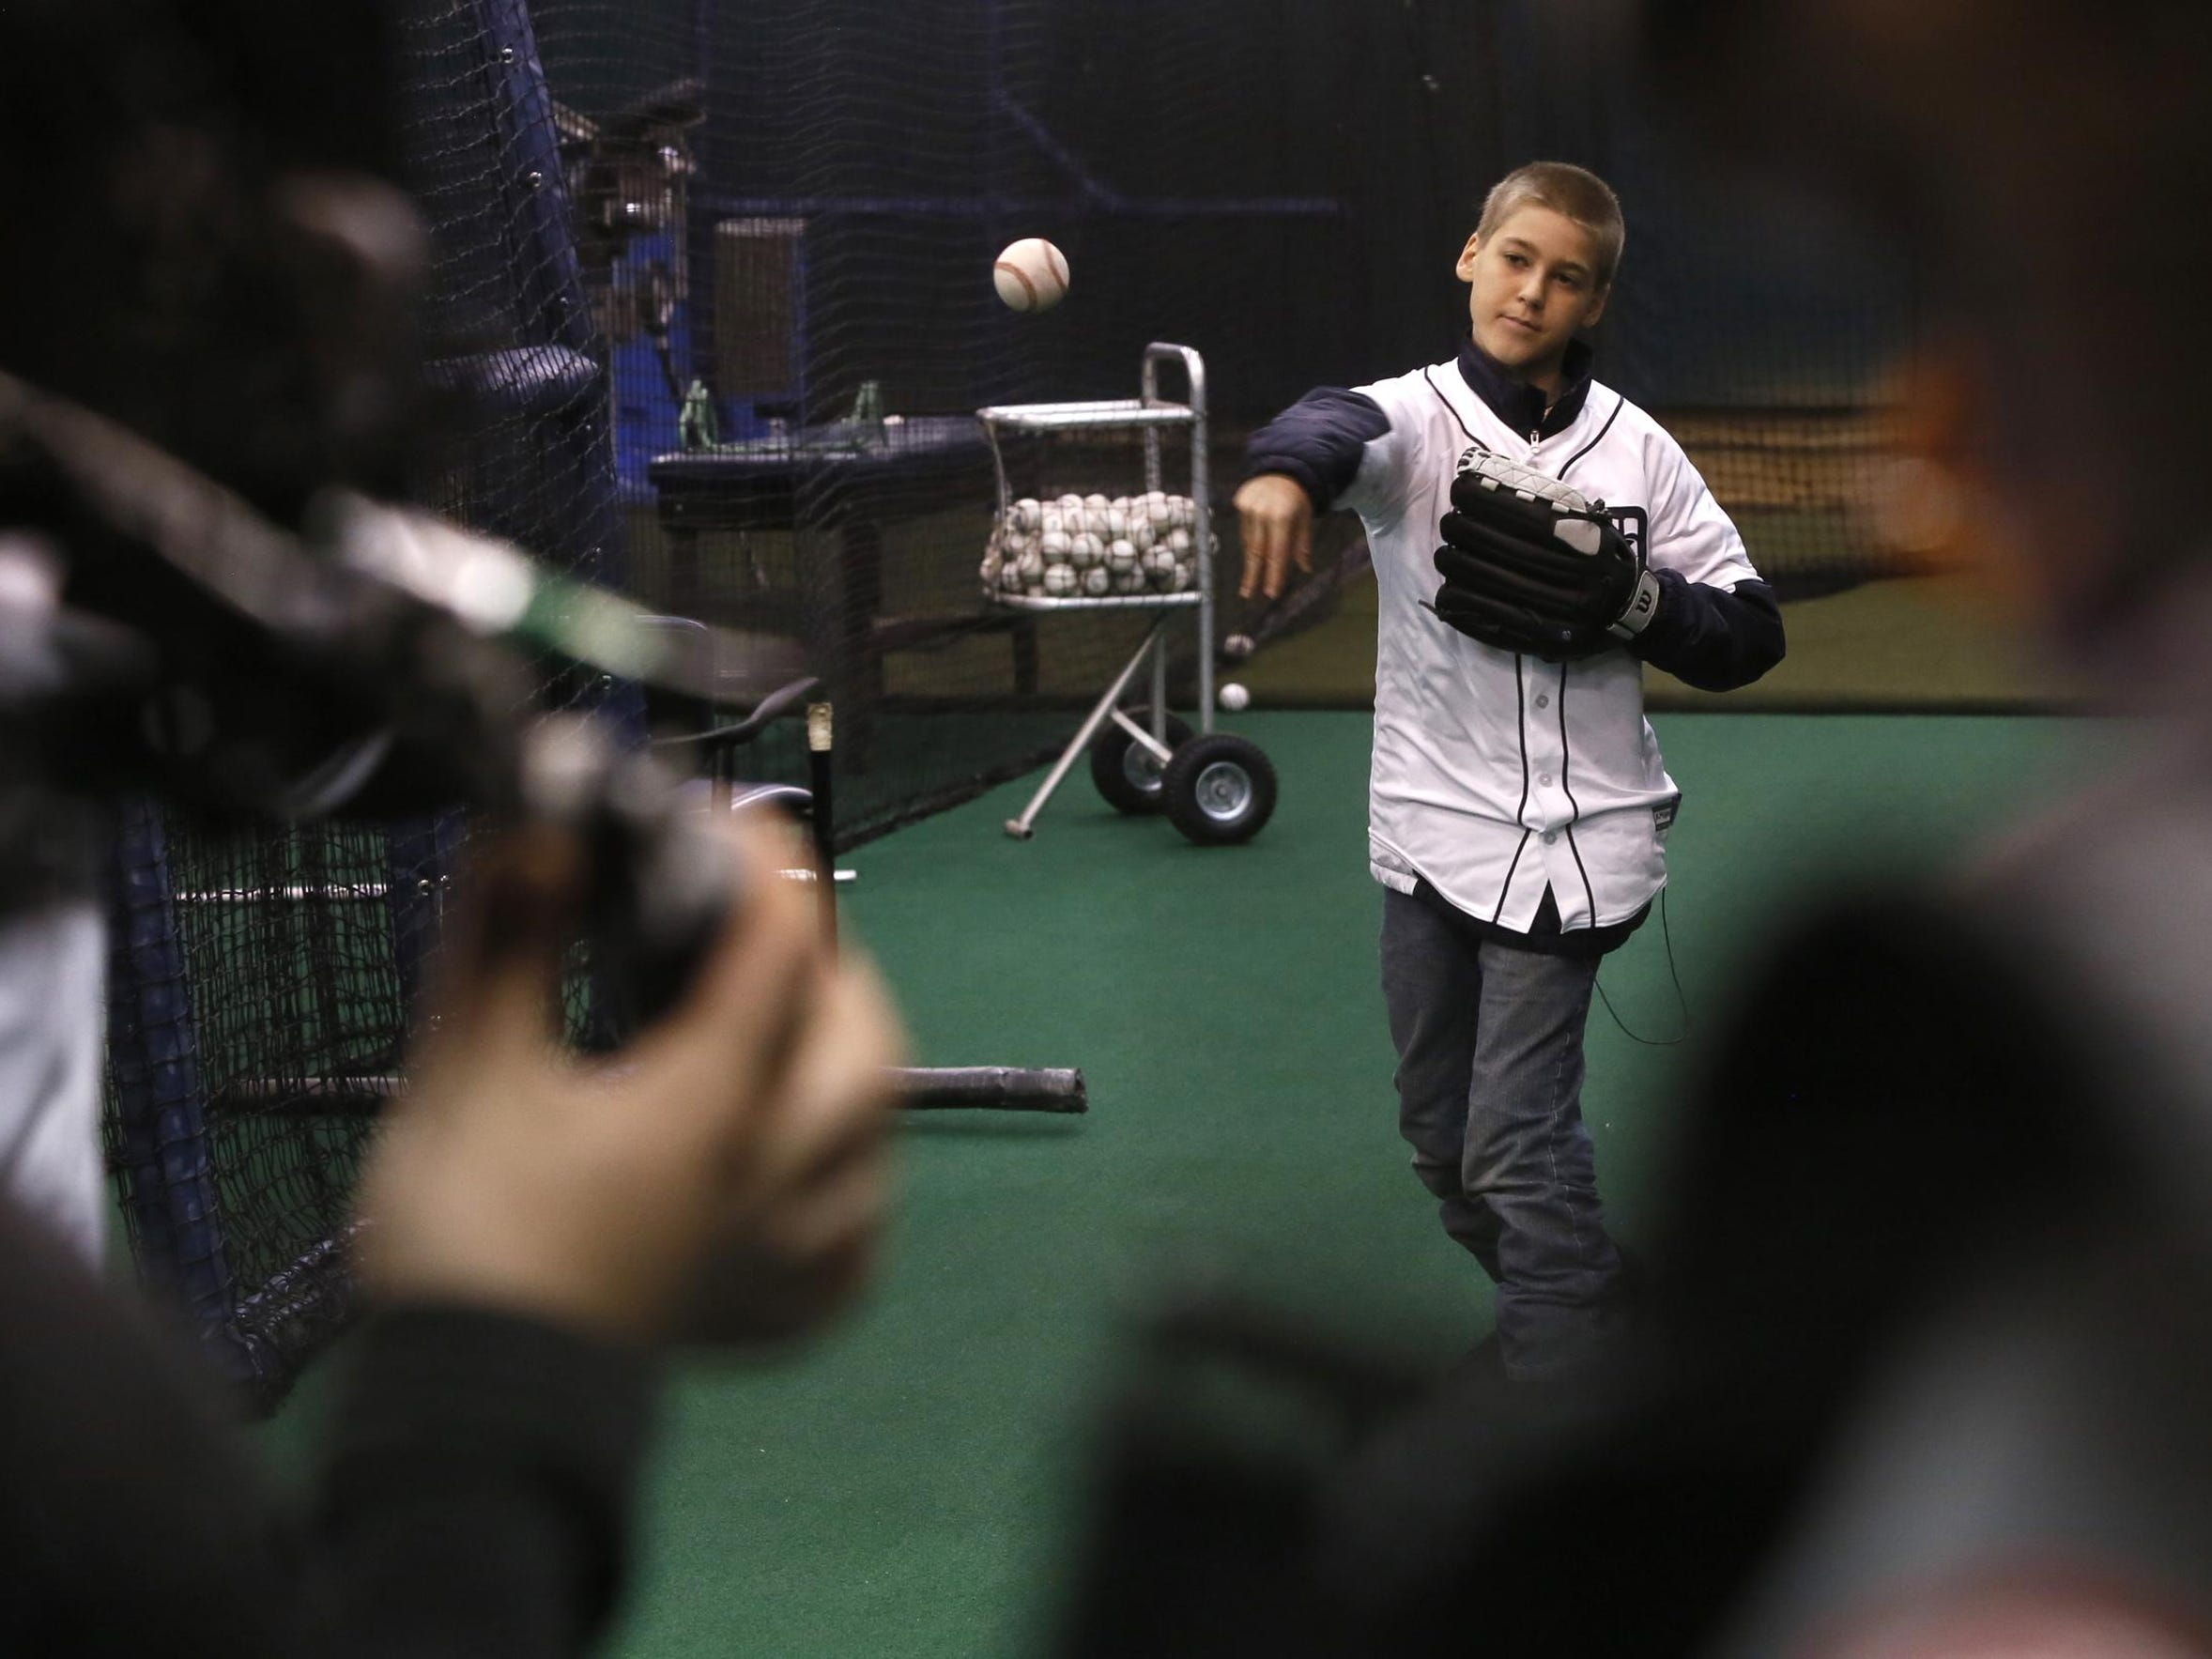 Cameras record as Hunter Bowman pitches to Tigers pitcher